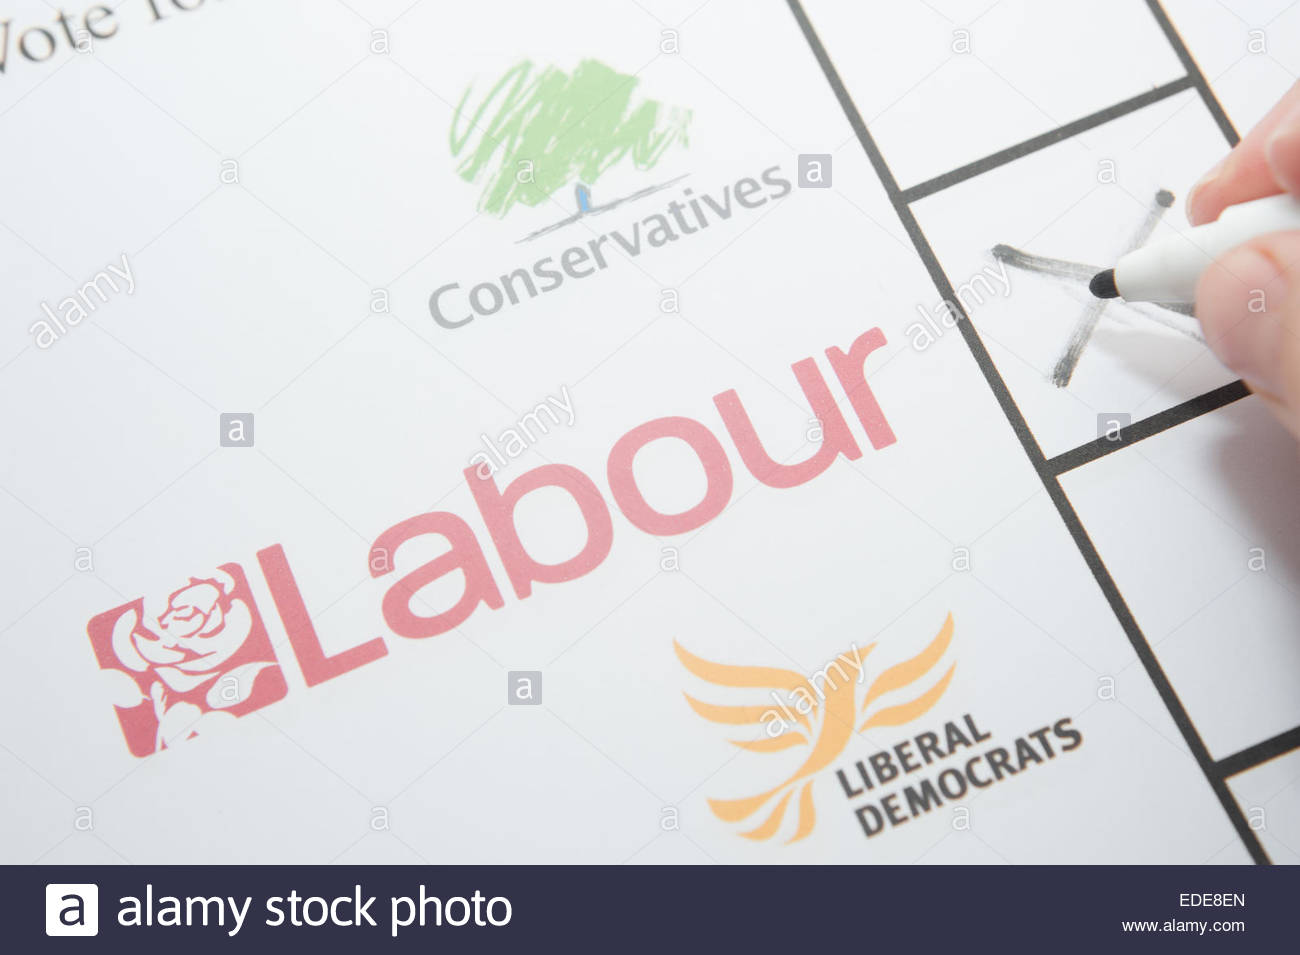 UK Elections ballot paper facsimile. Voting for the labour party. - Stock Image